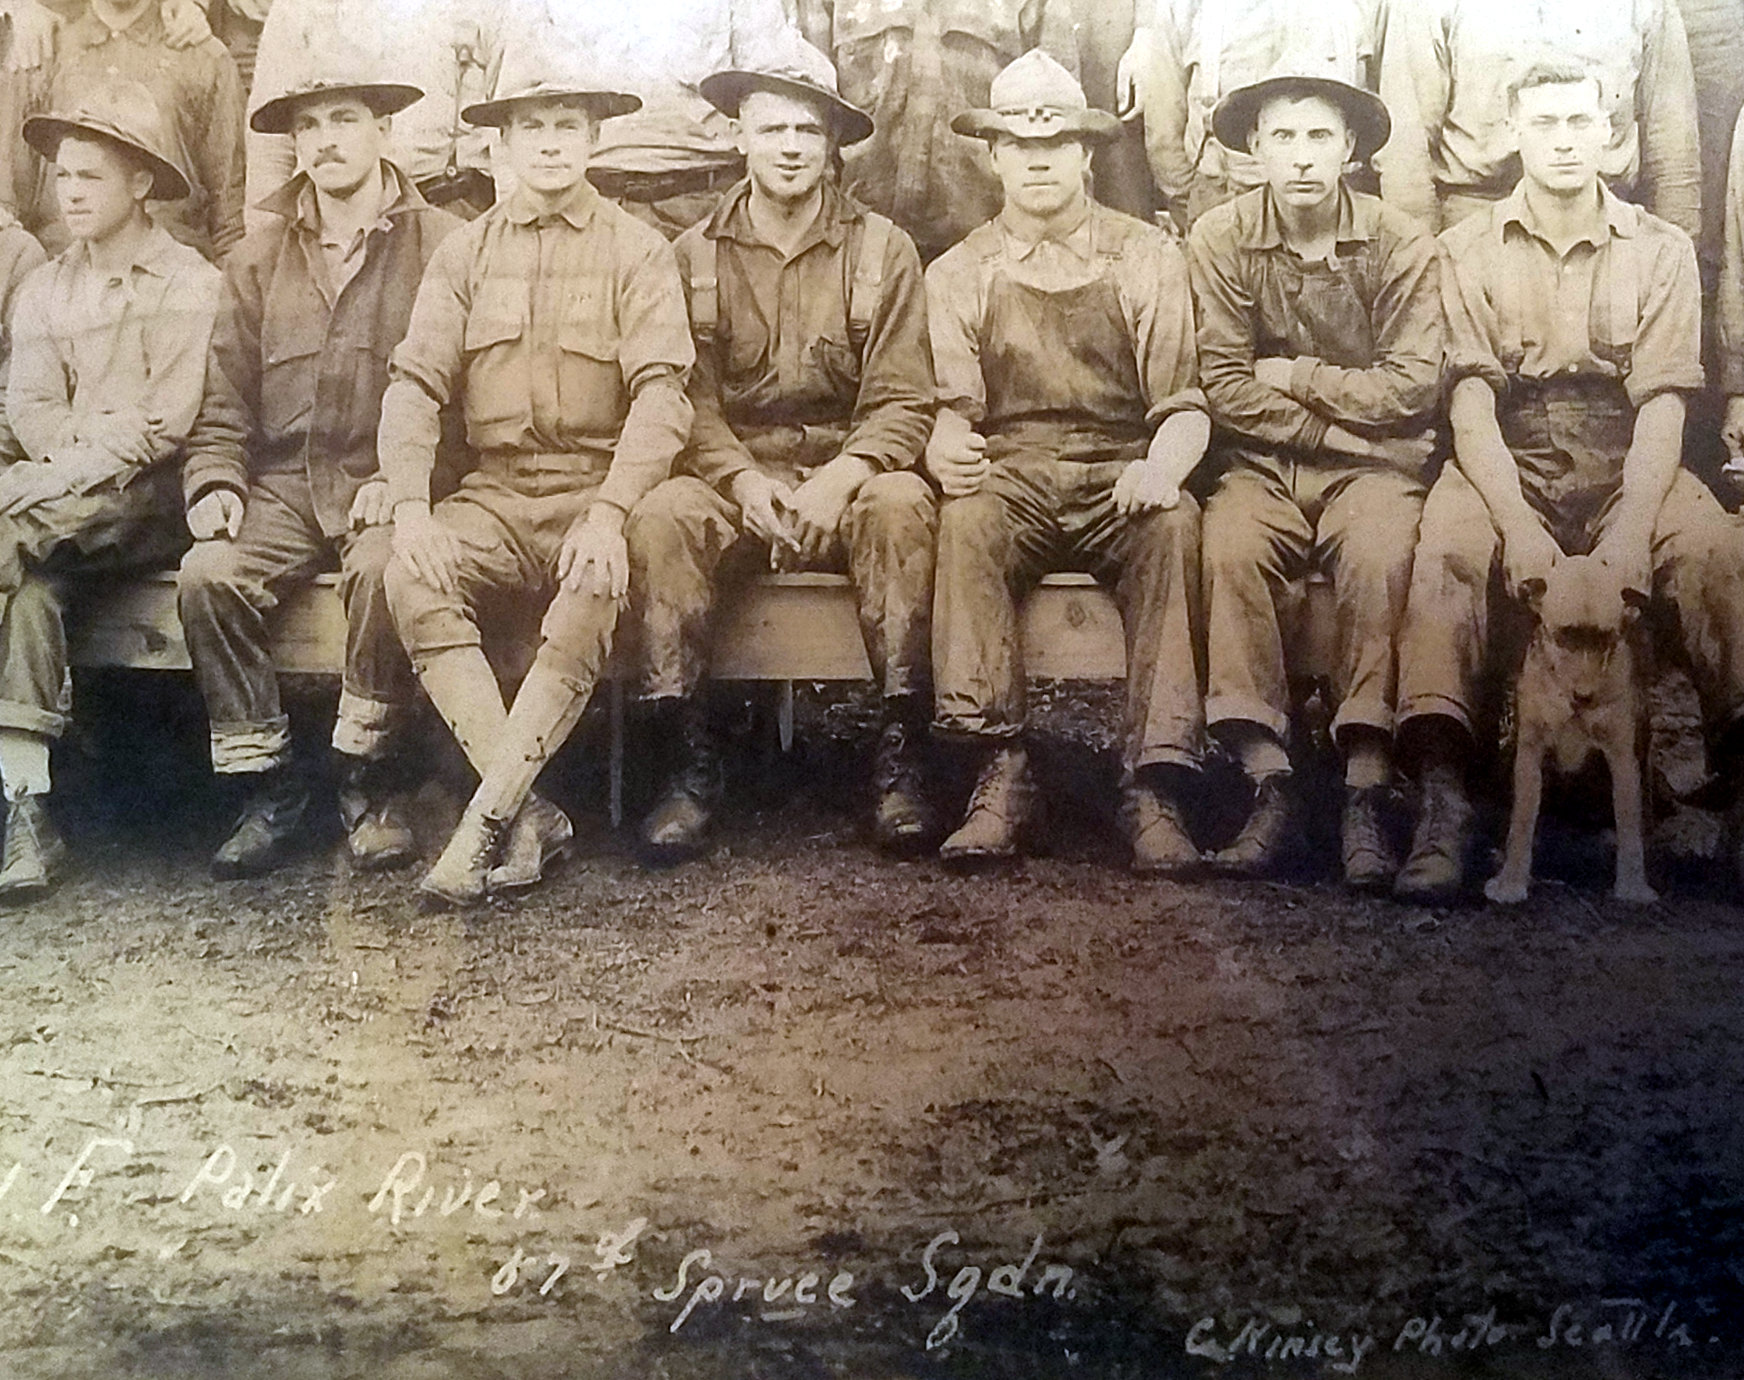 details of photo of 57th spruce squadron